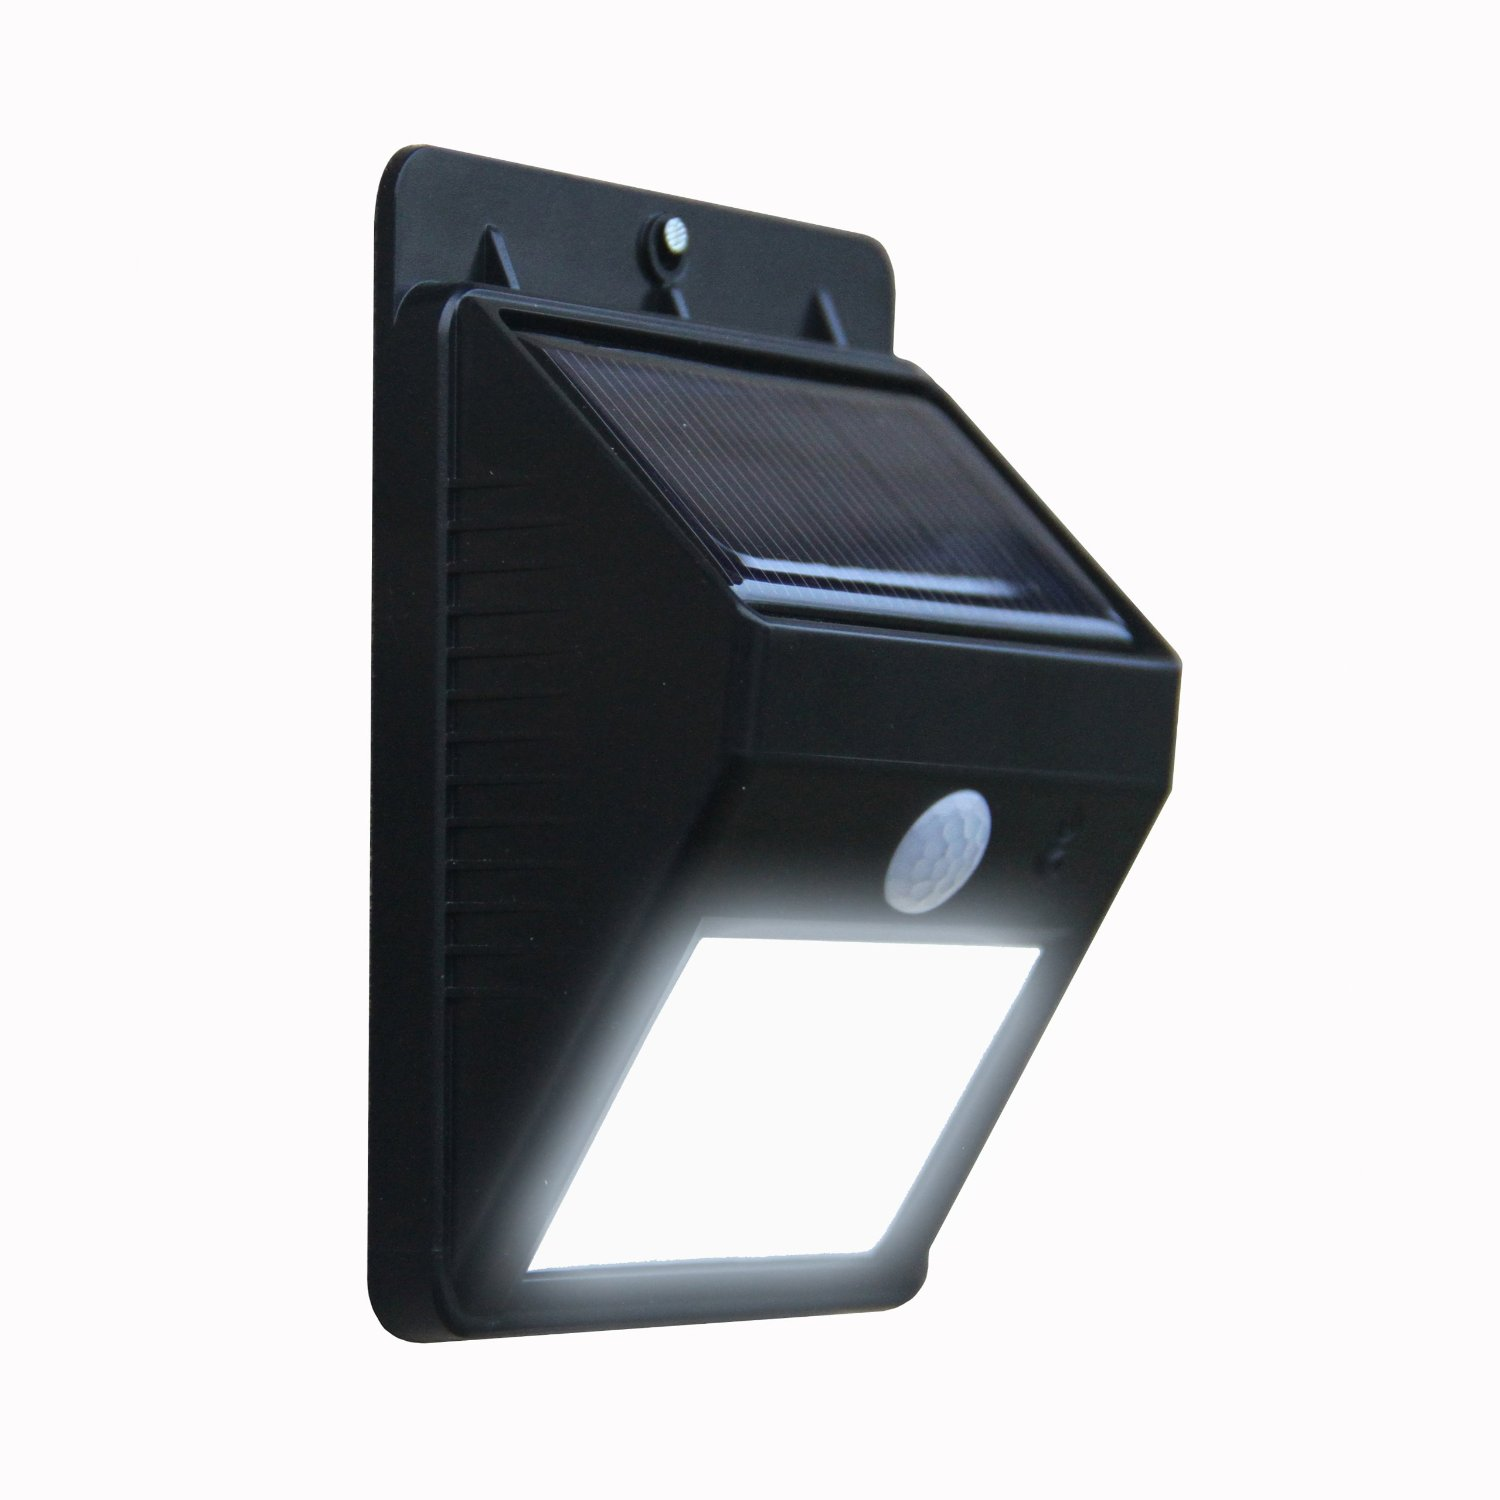 Led outdoor battery lights democraciaejustica 10 things to consider before installing battery outdoor aloadofball Image collections